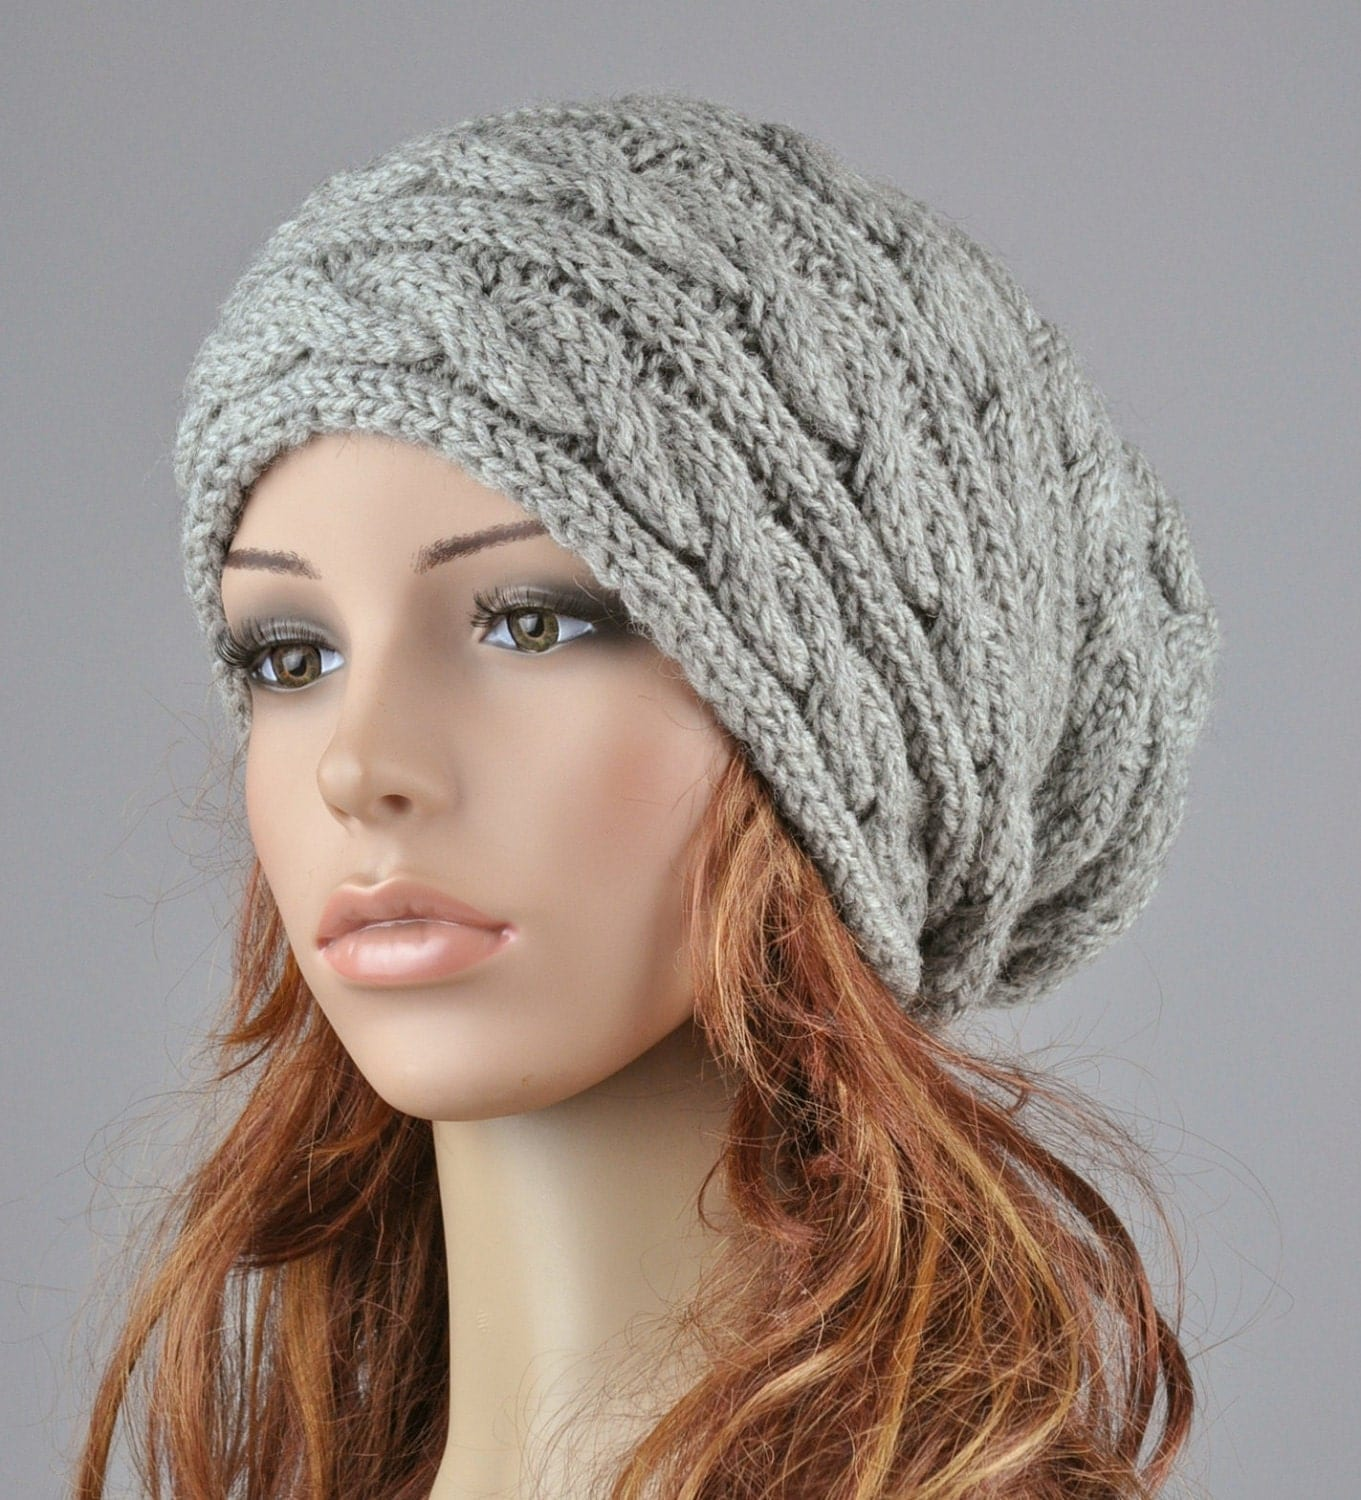 Knitting Pattern Free Slouchy Hat : Hand knit hat Grey hat slouchy hat cable pattern hat